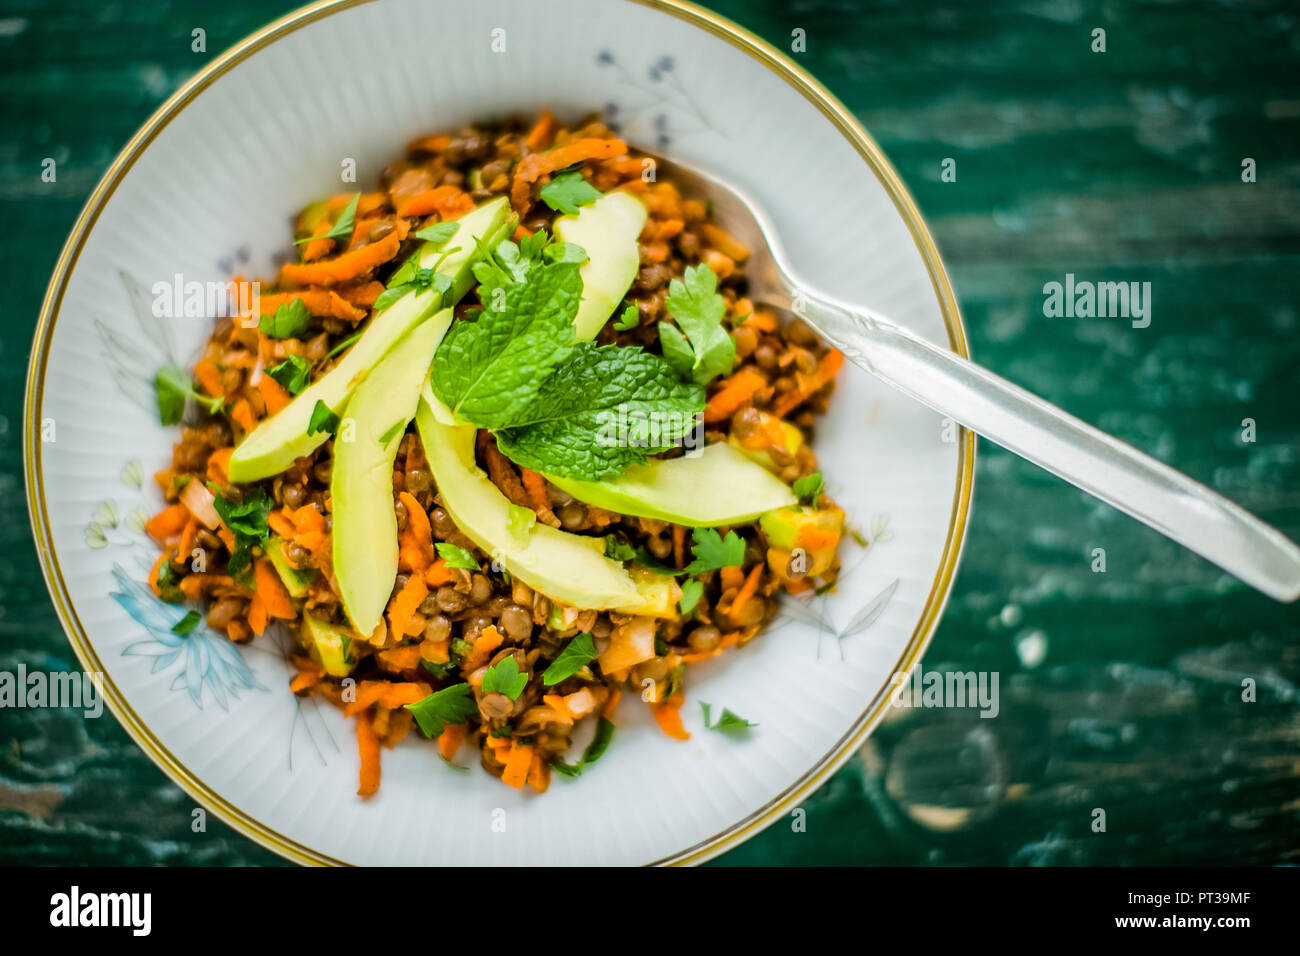 Lentil and carrot salad with avocado and mint - Stock Image